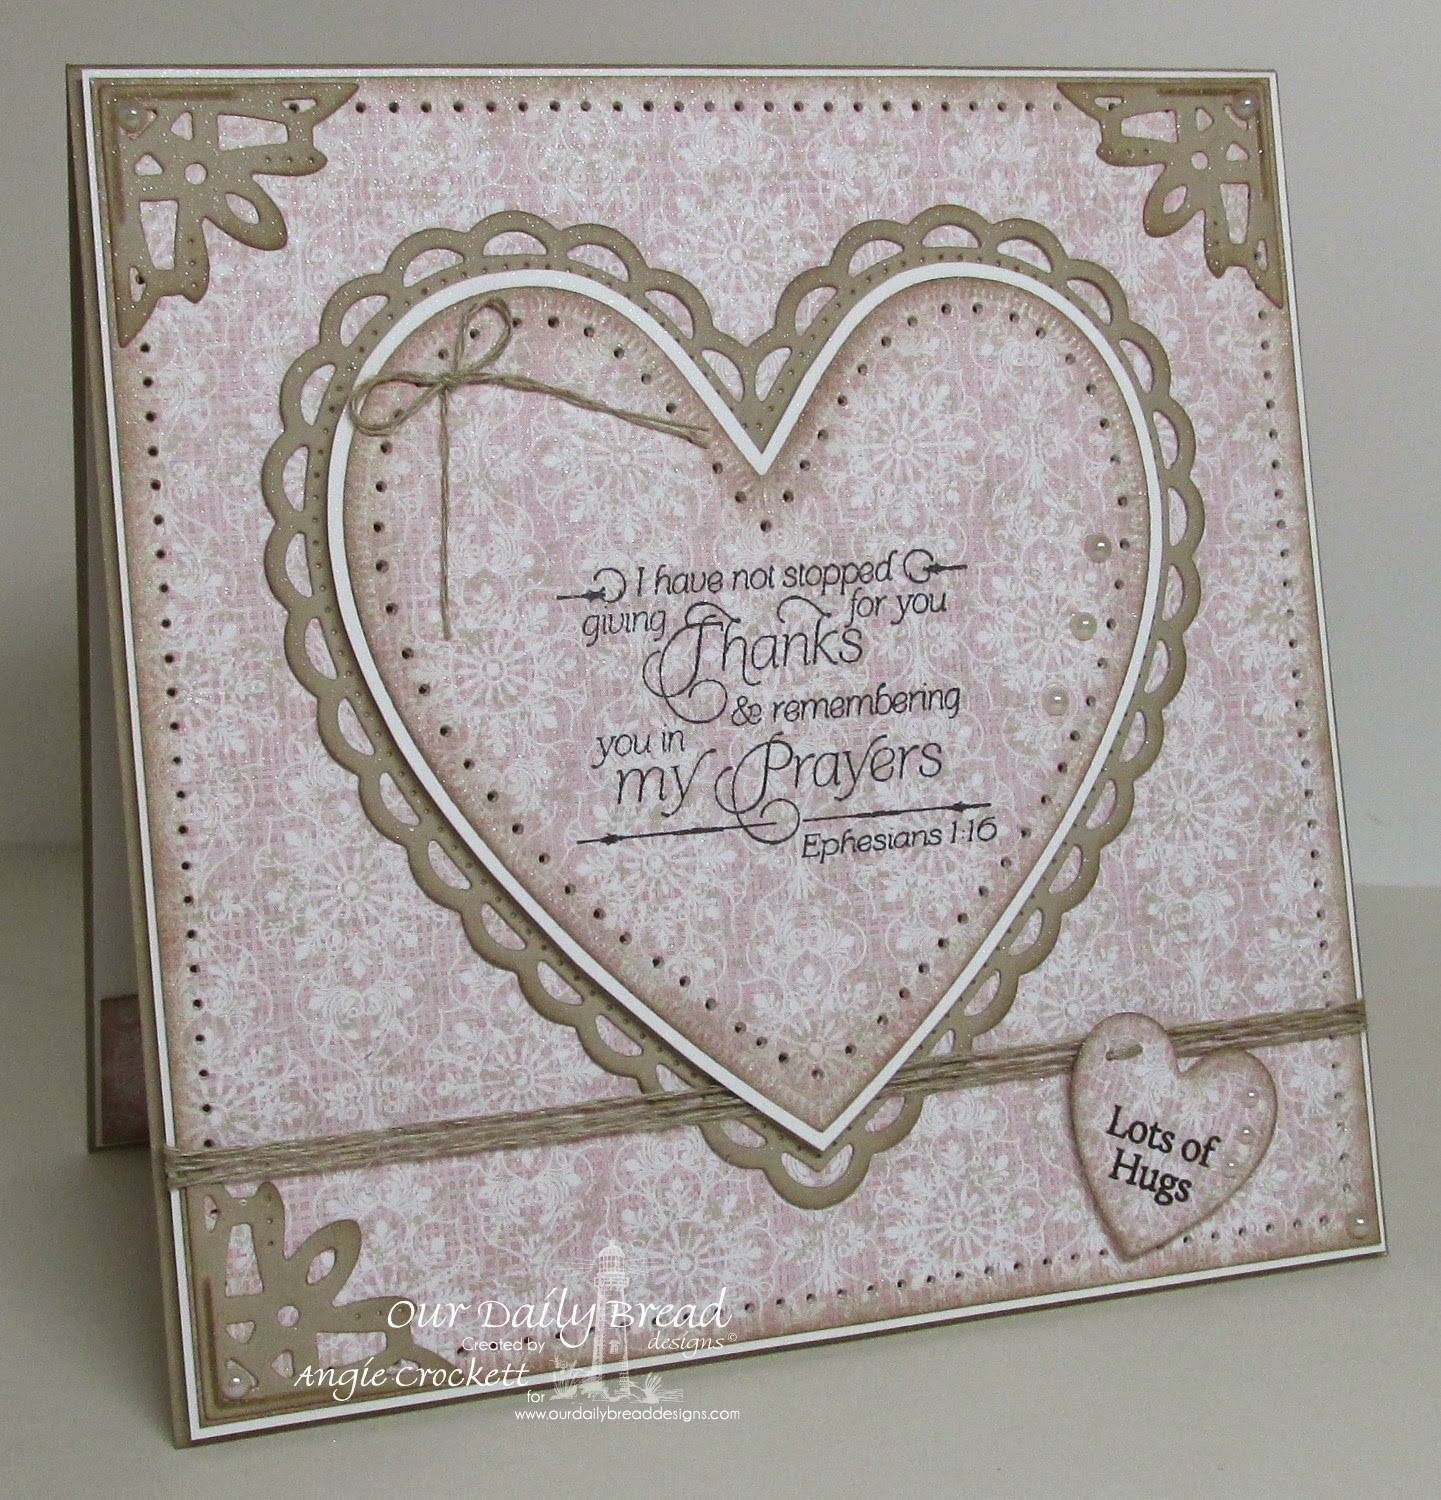 ODBD Custom Ornate Hearts Dies, ODBD Custom Ornate Borders and Flower Dies, ODBD Heart and Soul Paper Collection, ODBD Thank You, ODBD Mini Tag Sentiments, Card Designer Angie Crockett